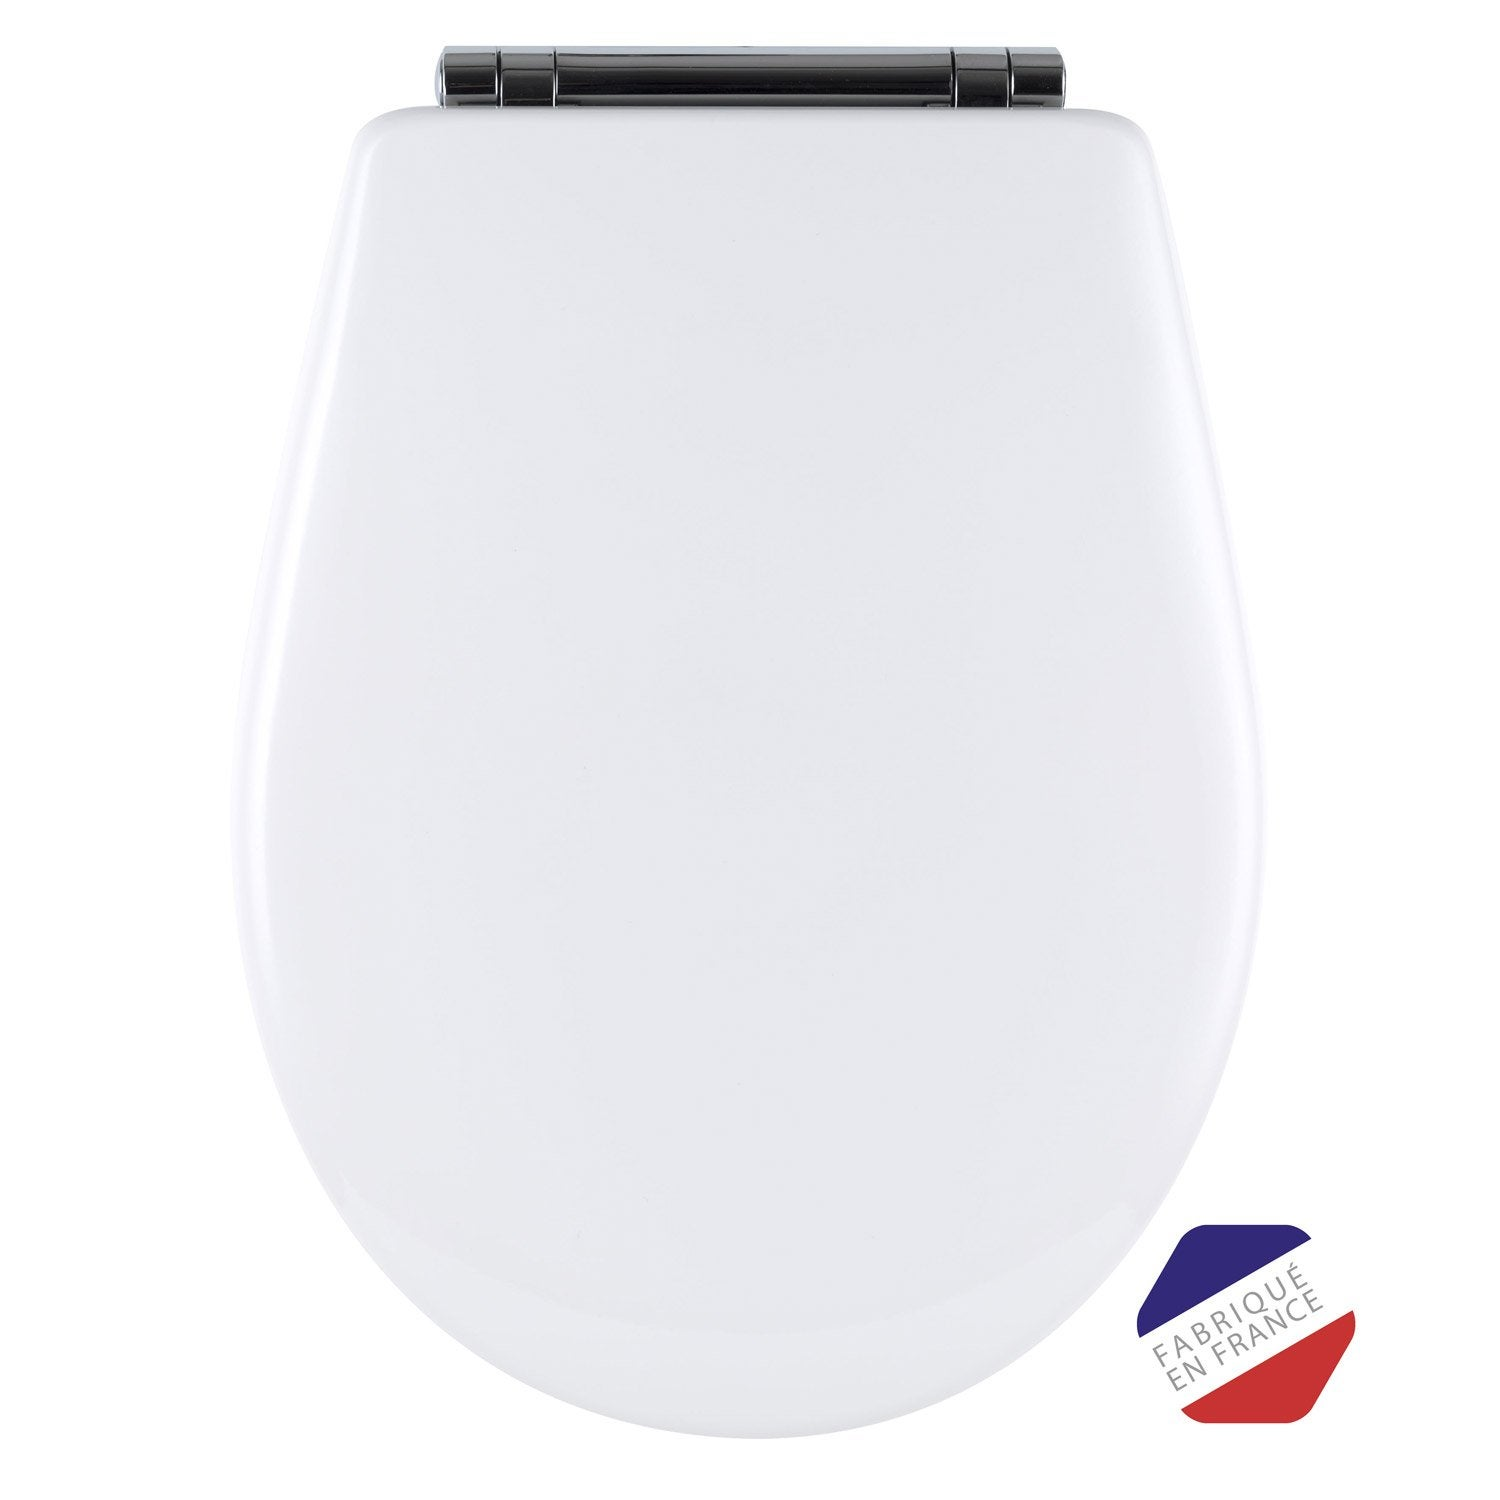 Abattant japonais leroy merlin abattant wc et stickers for Abattant wc clipsable castorama